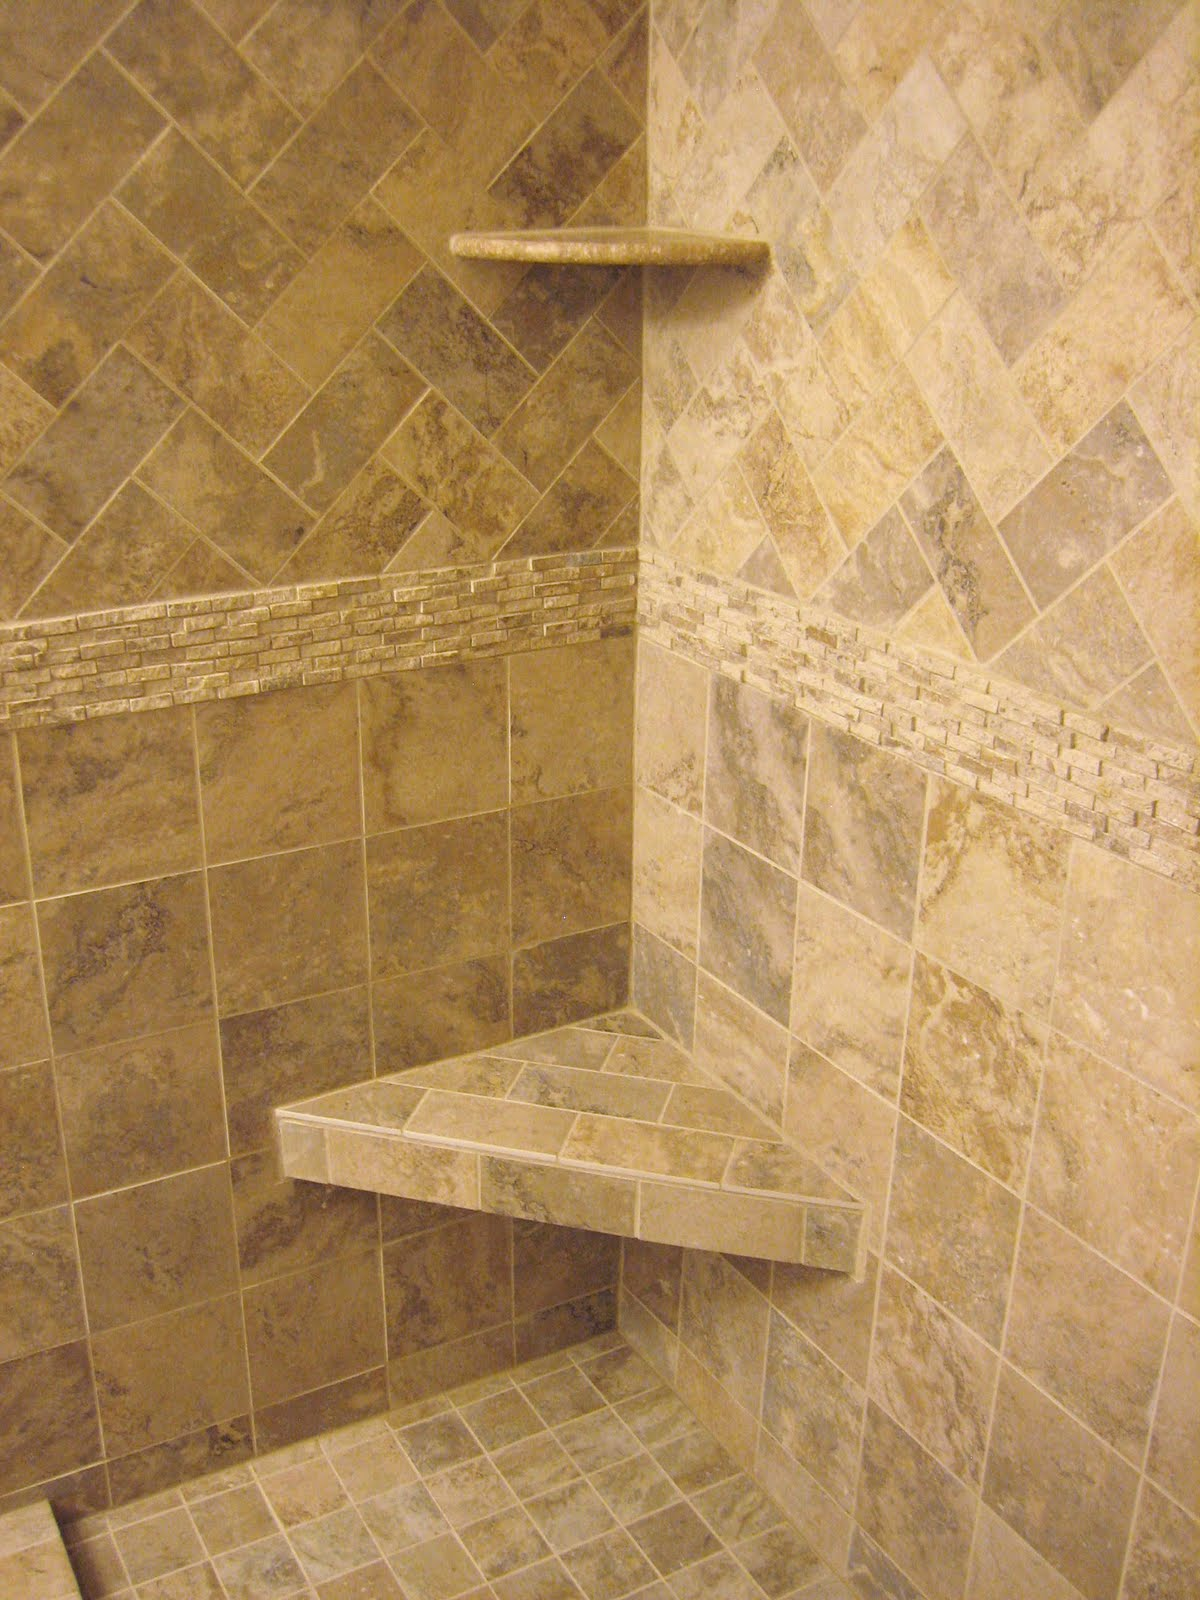 H winter showroom blog june 2010 for Small bathroom tile ideas photos